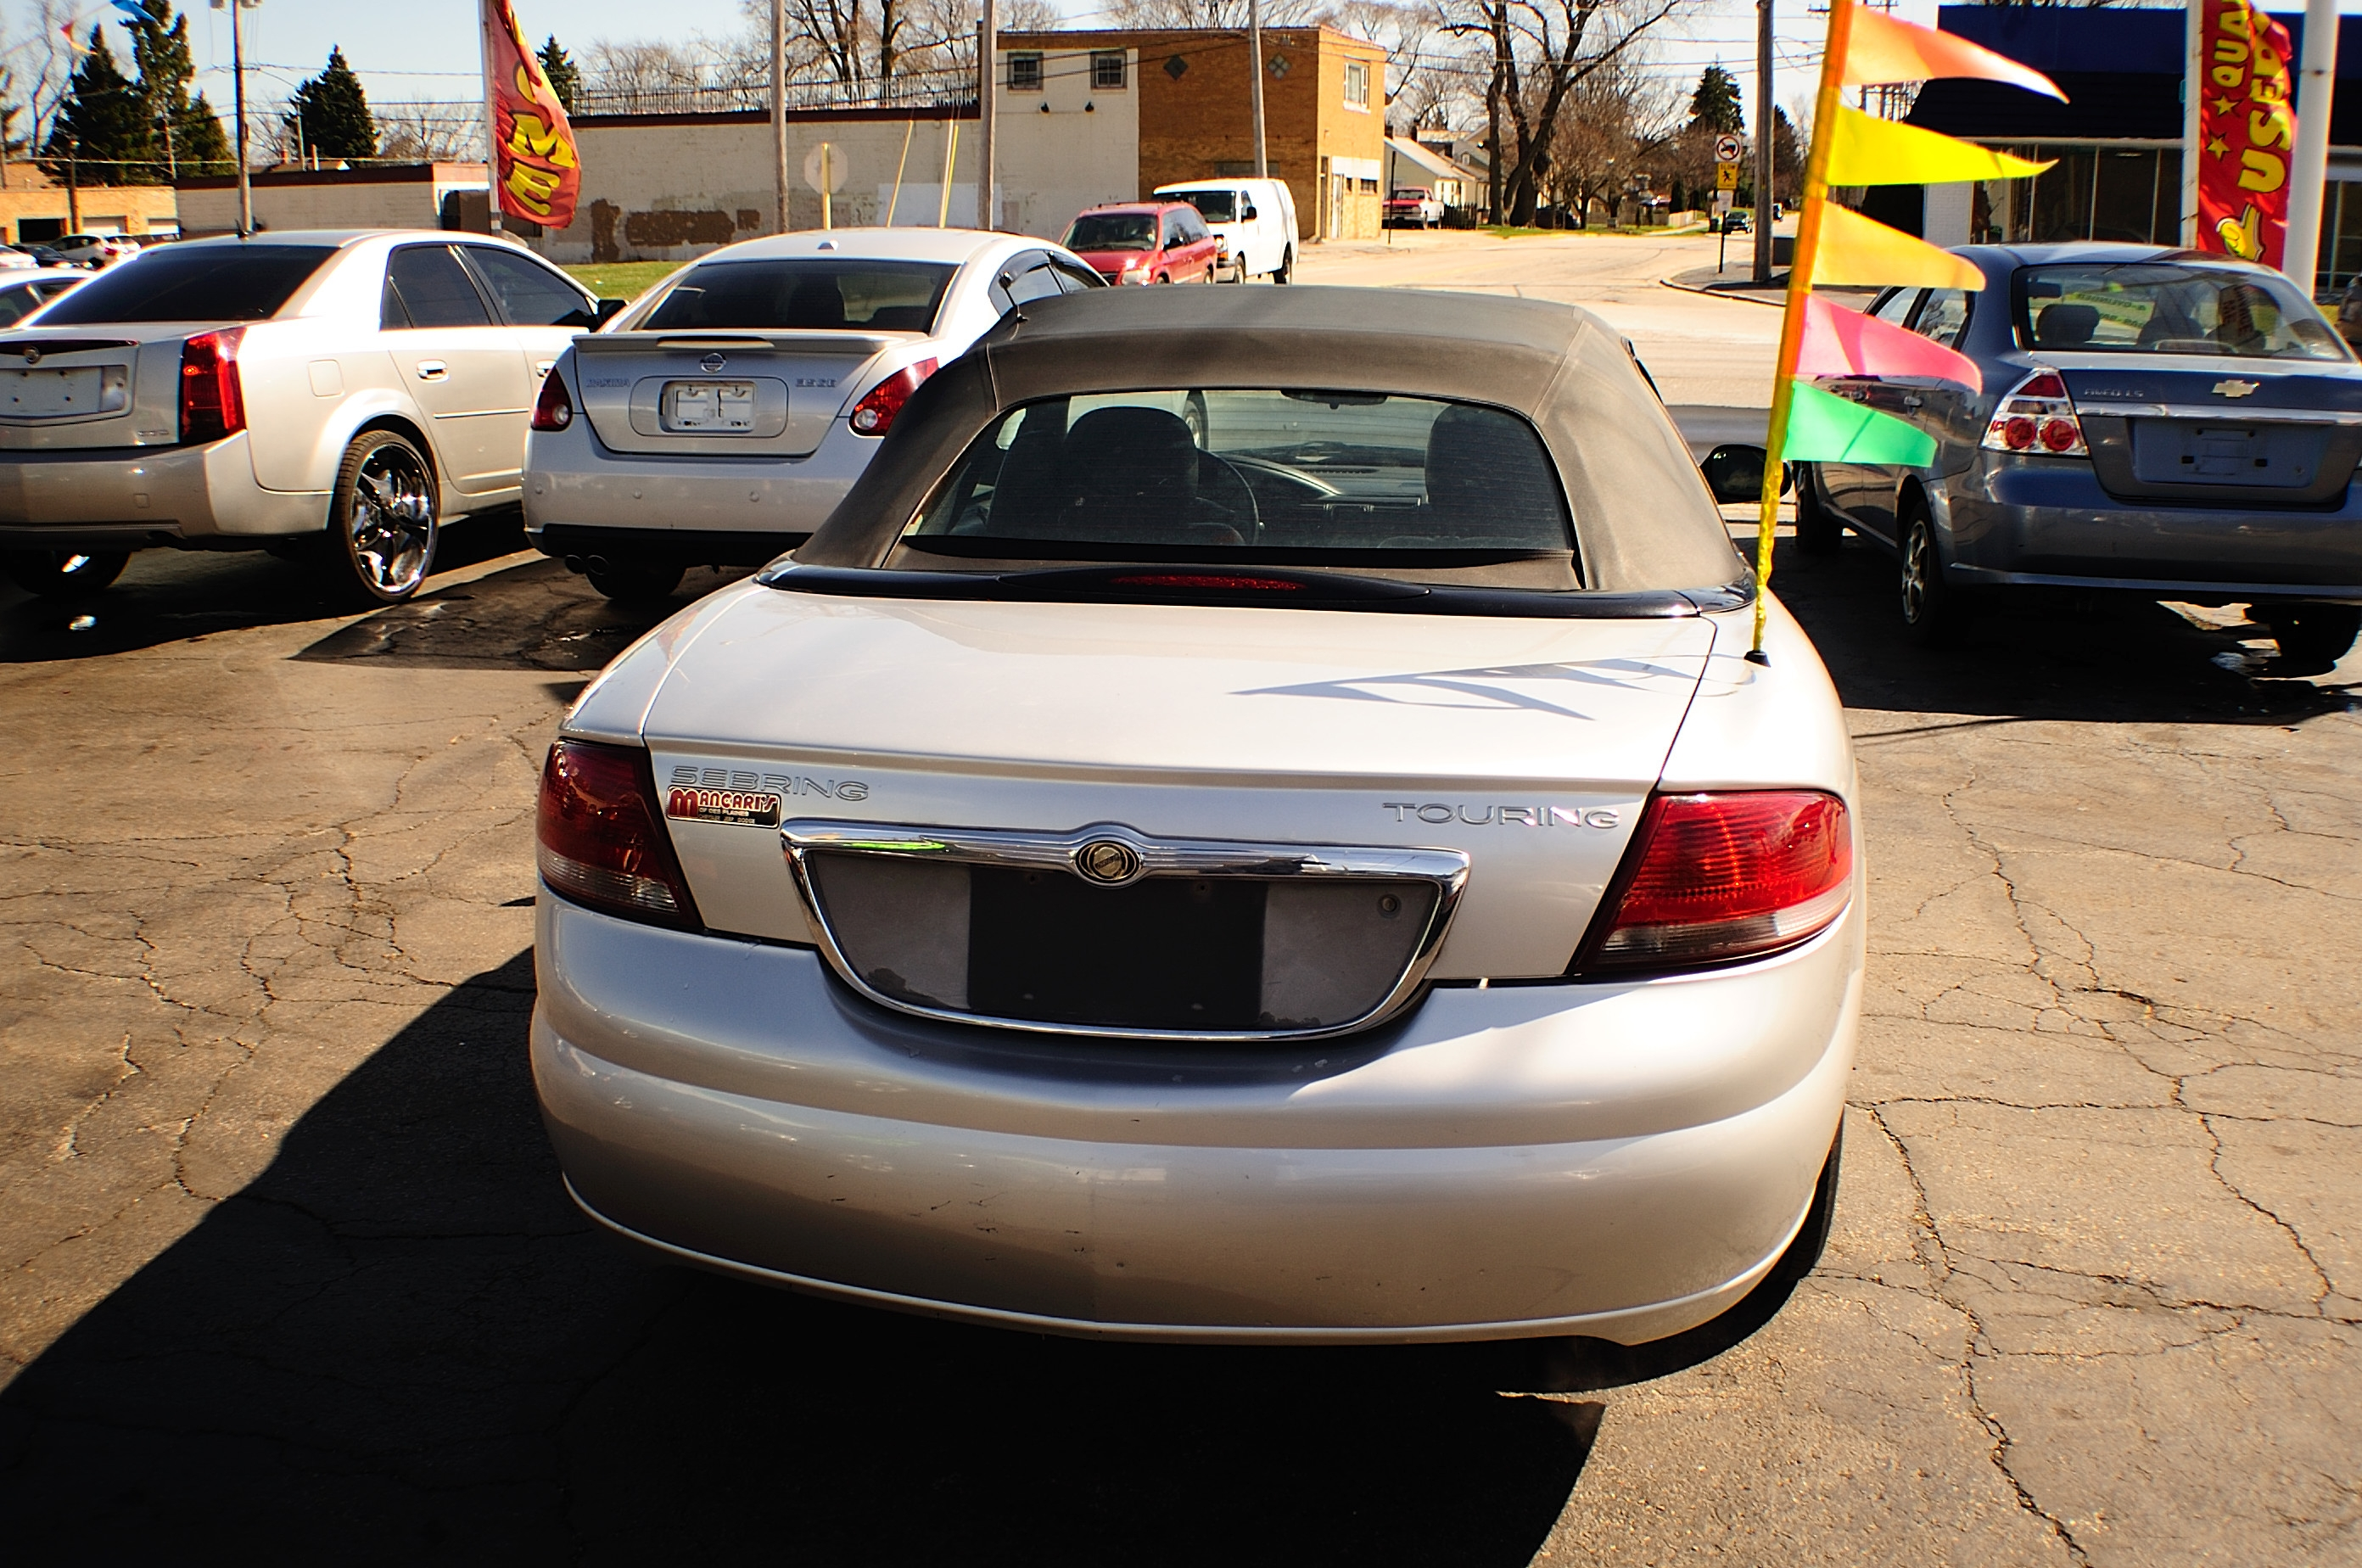 2004 Chrysler Sebring Silver Convertible used car sale Fox Lake Fox River Grove Grayslake